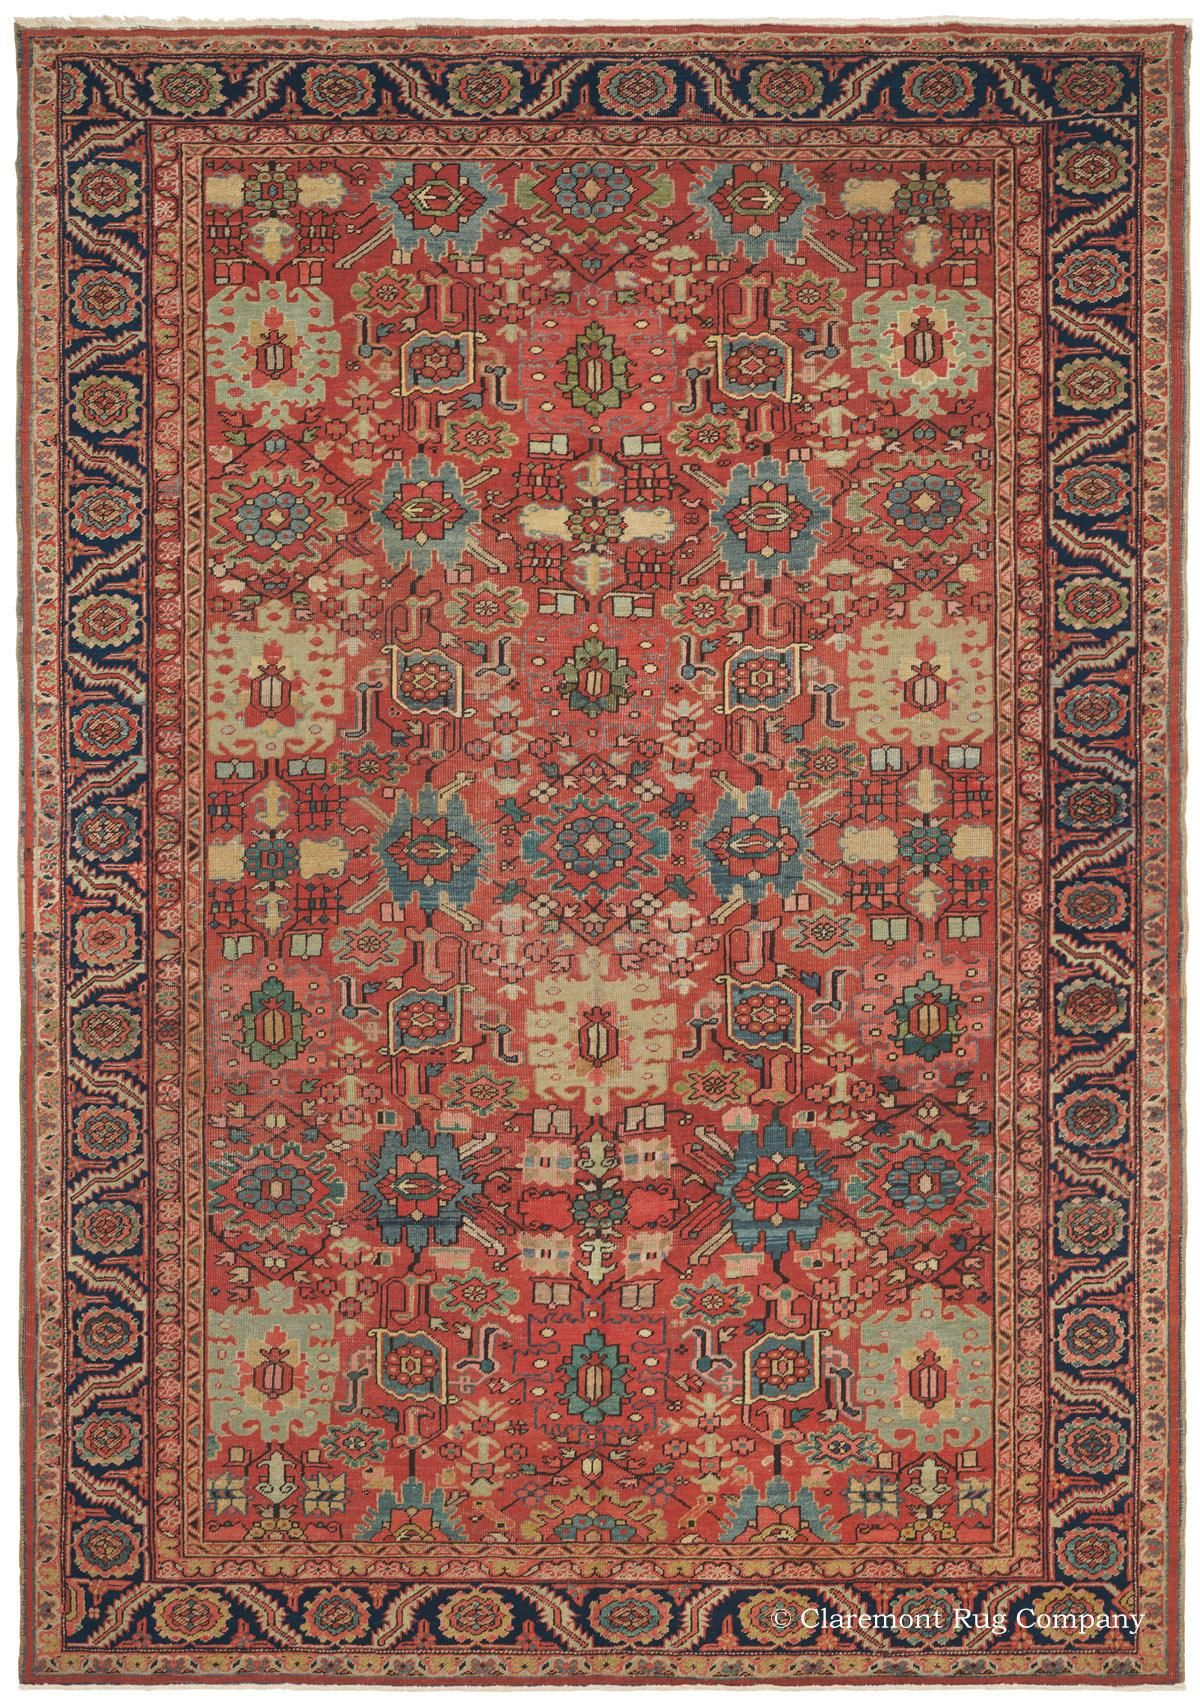 Alfombras Y Tapices Heriz Northwest Persian 9ft 0in X 12ft 7in Circa 1900